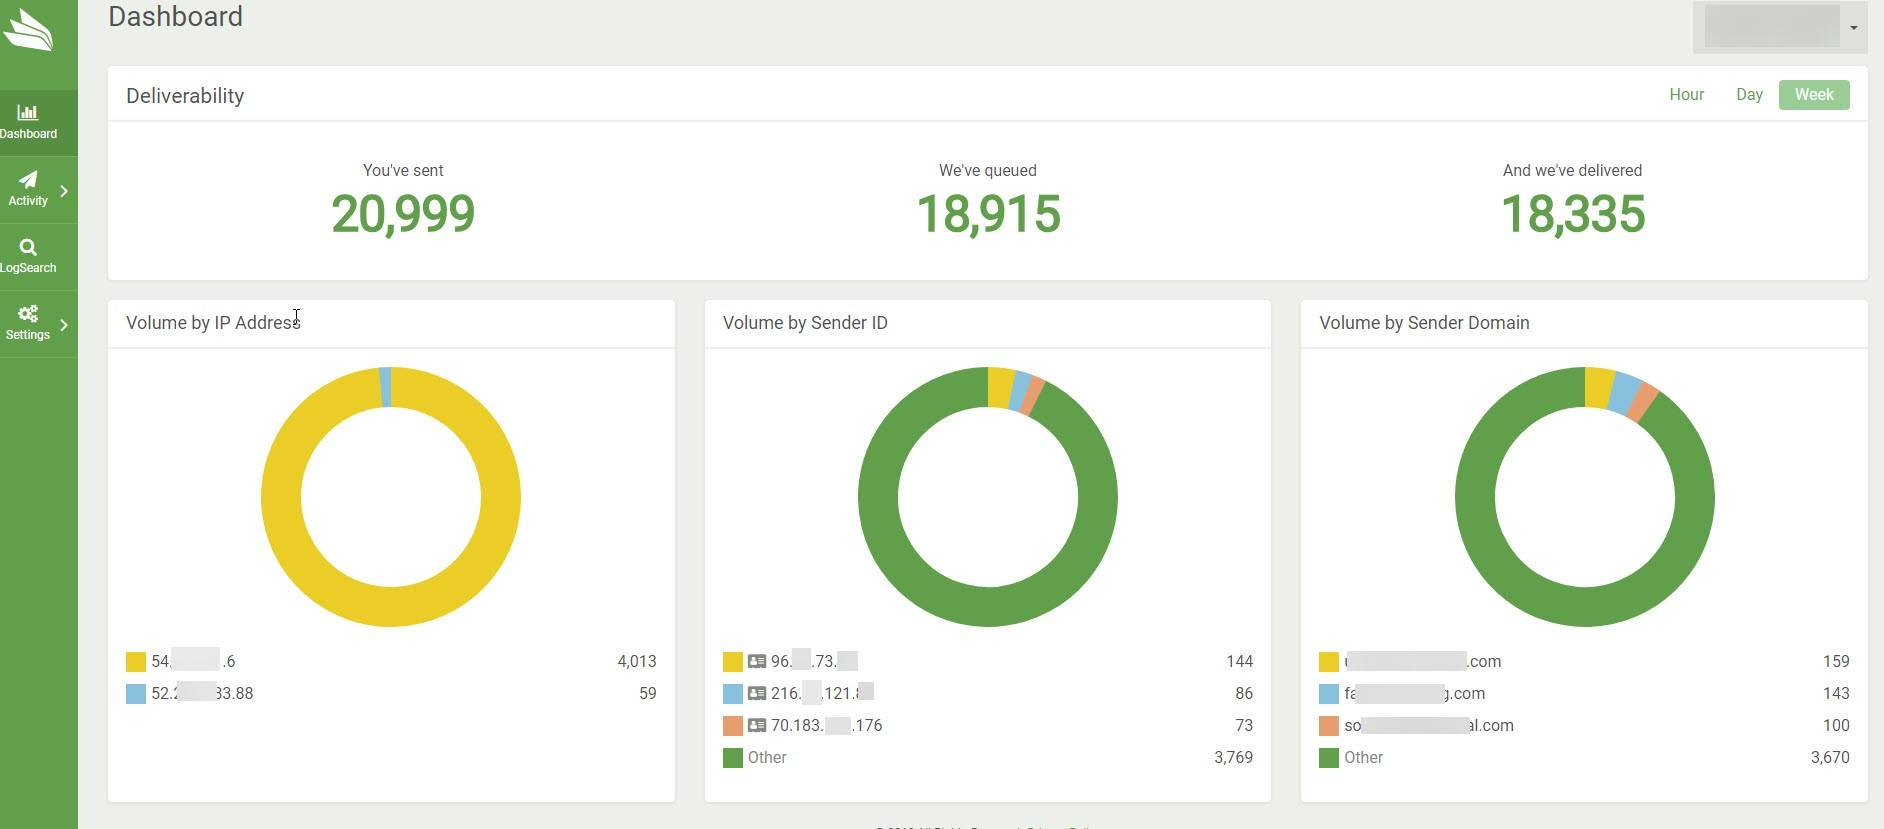 SMTP Service Dashboard Screenshot